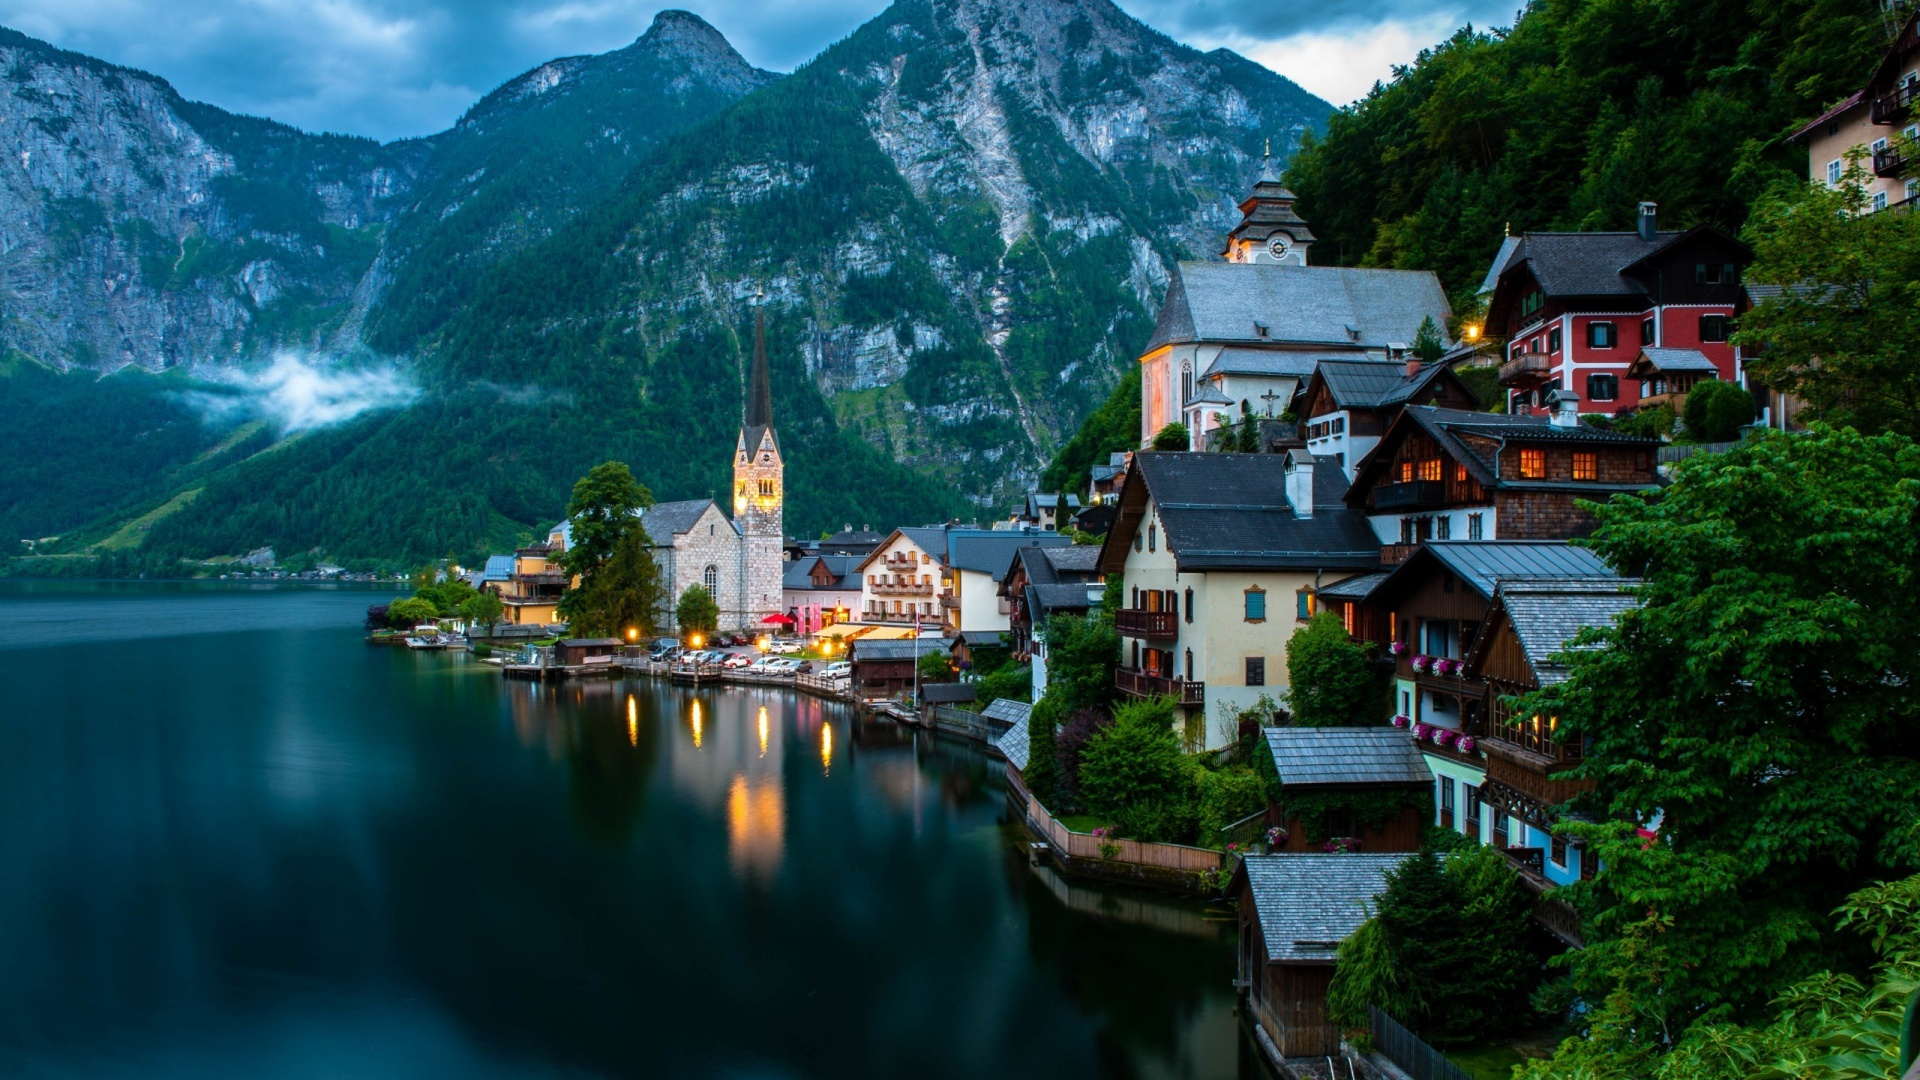 桌面背景1600x900_1920x1080 Hallstatt Austria desktop PC and Mac wallpaper